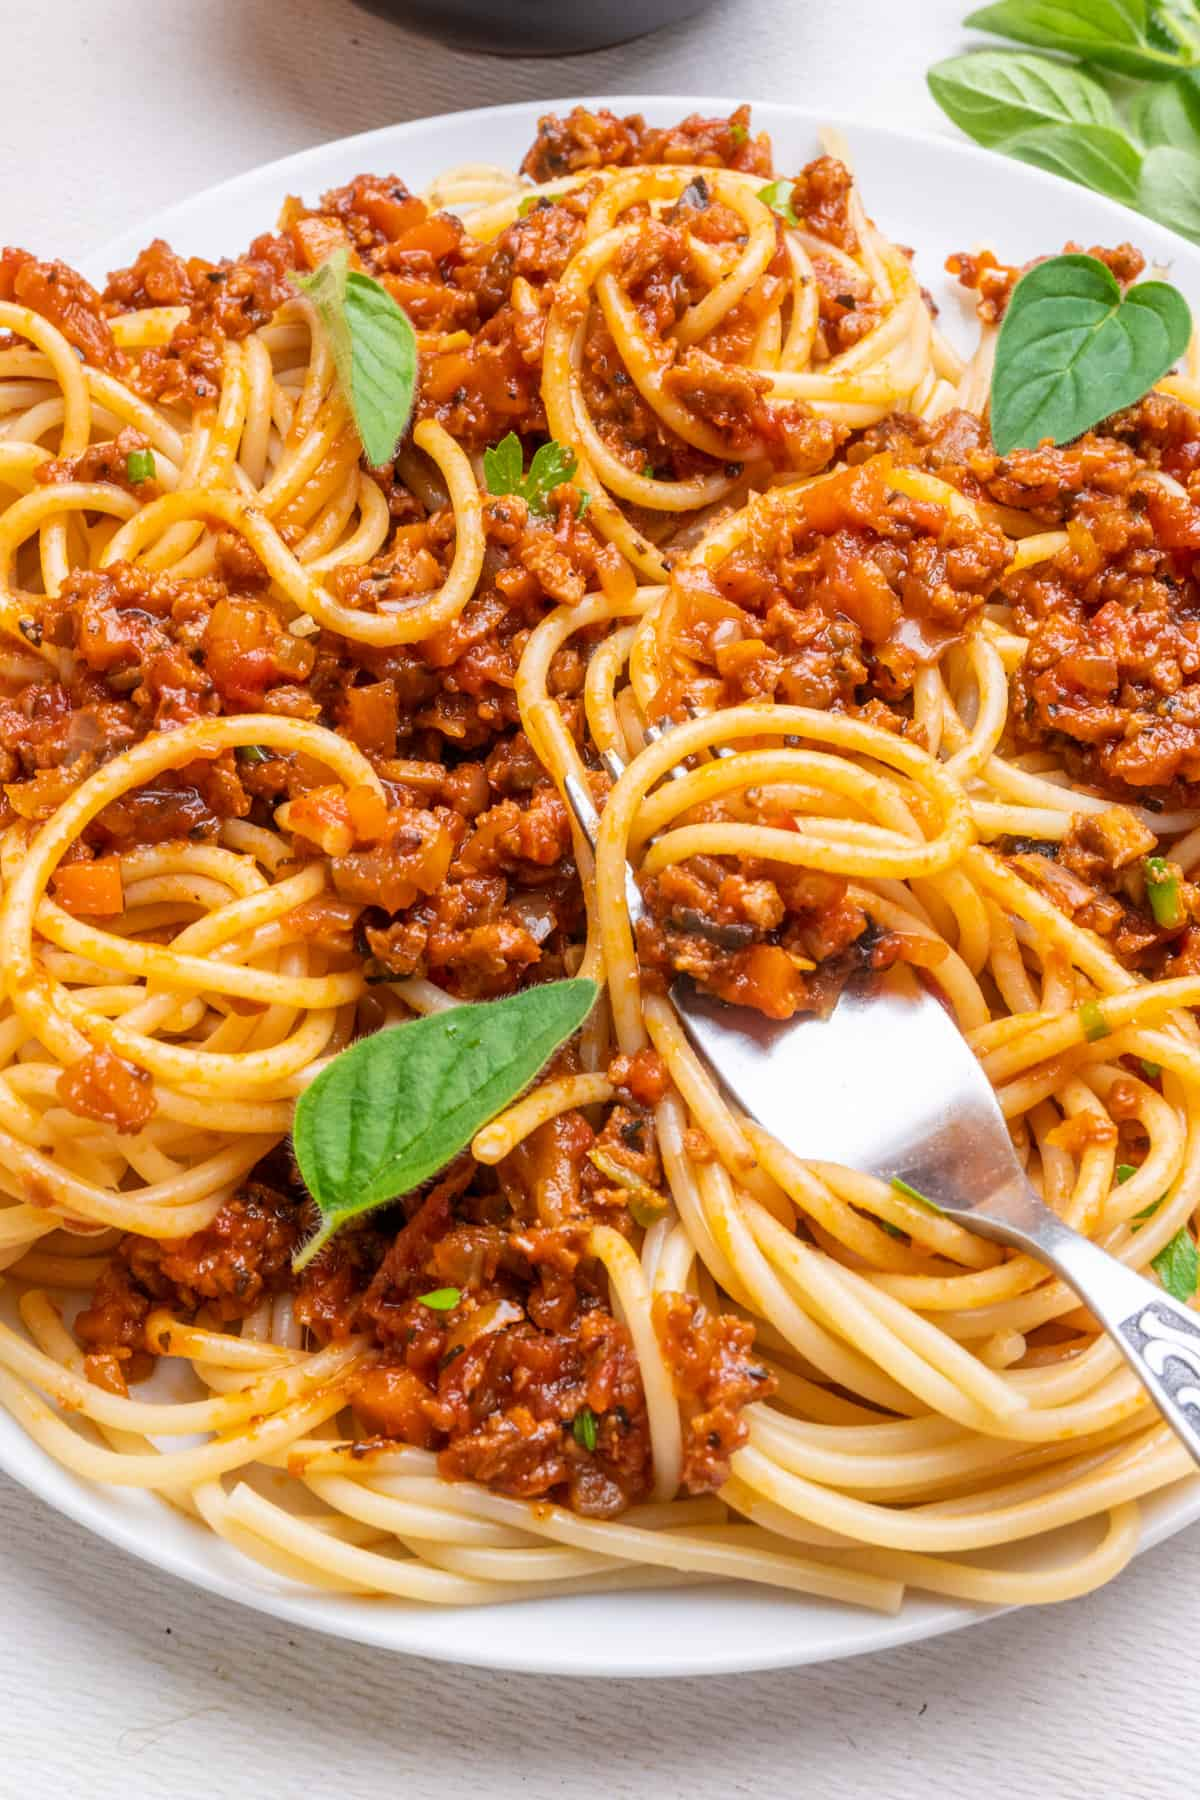 A fork digs into a plate of spaghetti bolognese.